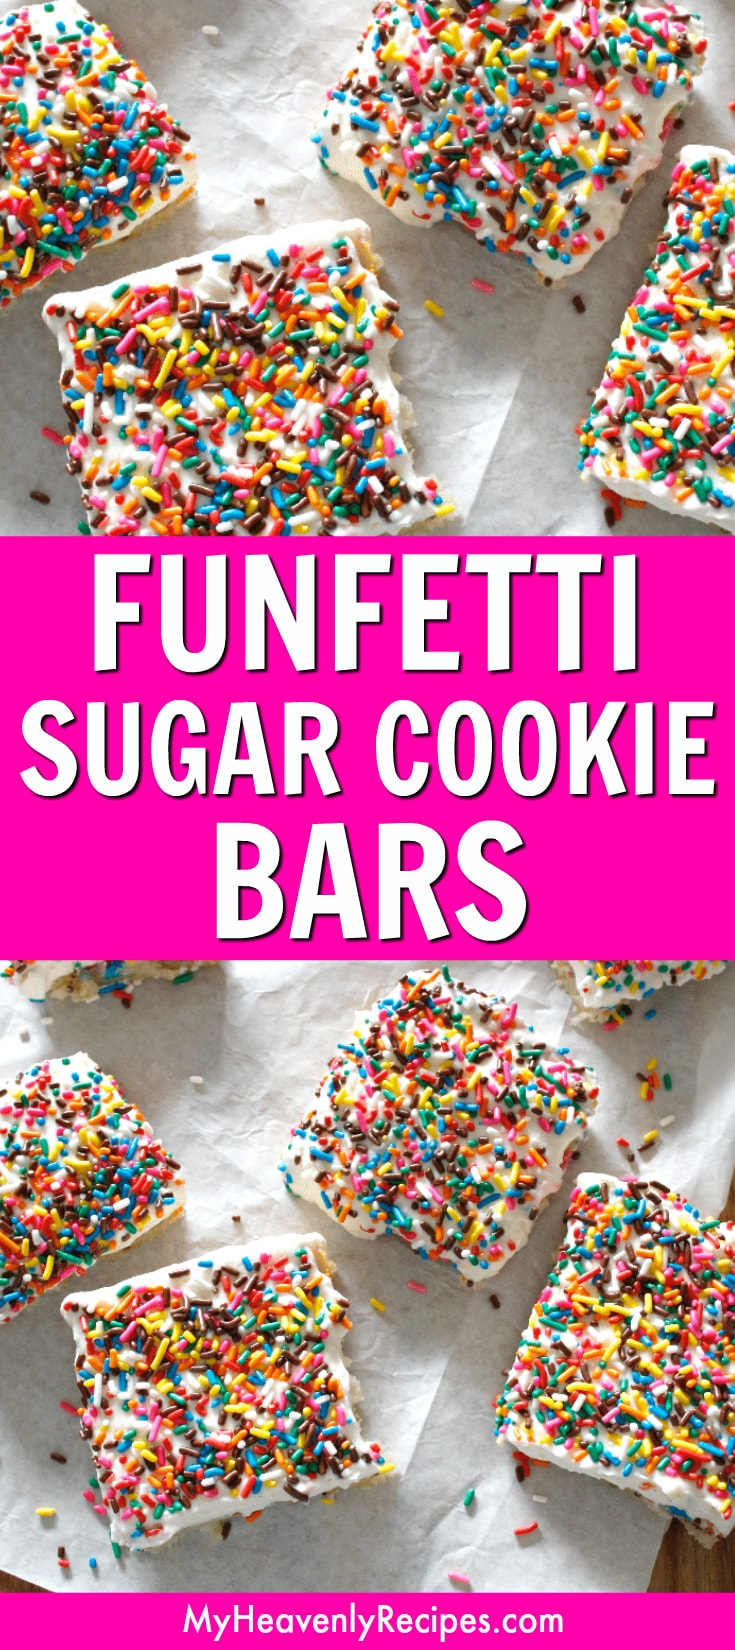 Looking for a fun and easy dessert recipe? You'll love these Funfetti Sugar Cookie Bars! A layer of delicious sugar cookie dough topped with Funfetti sprinkles and divine whipped icing – dessert perfection. #sugarcookies #sugarcookiebars #funfetti